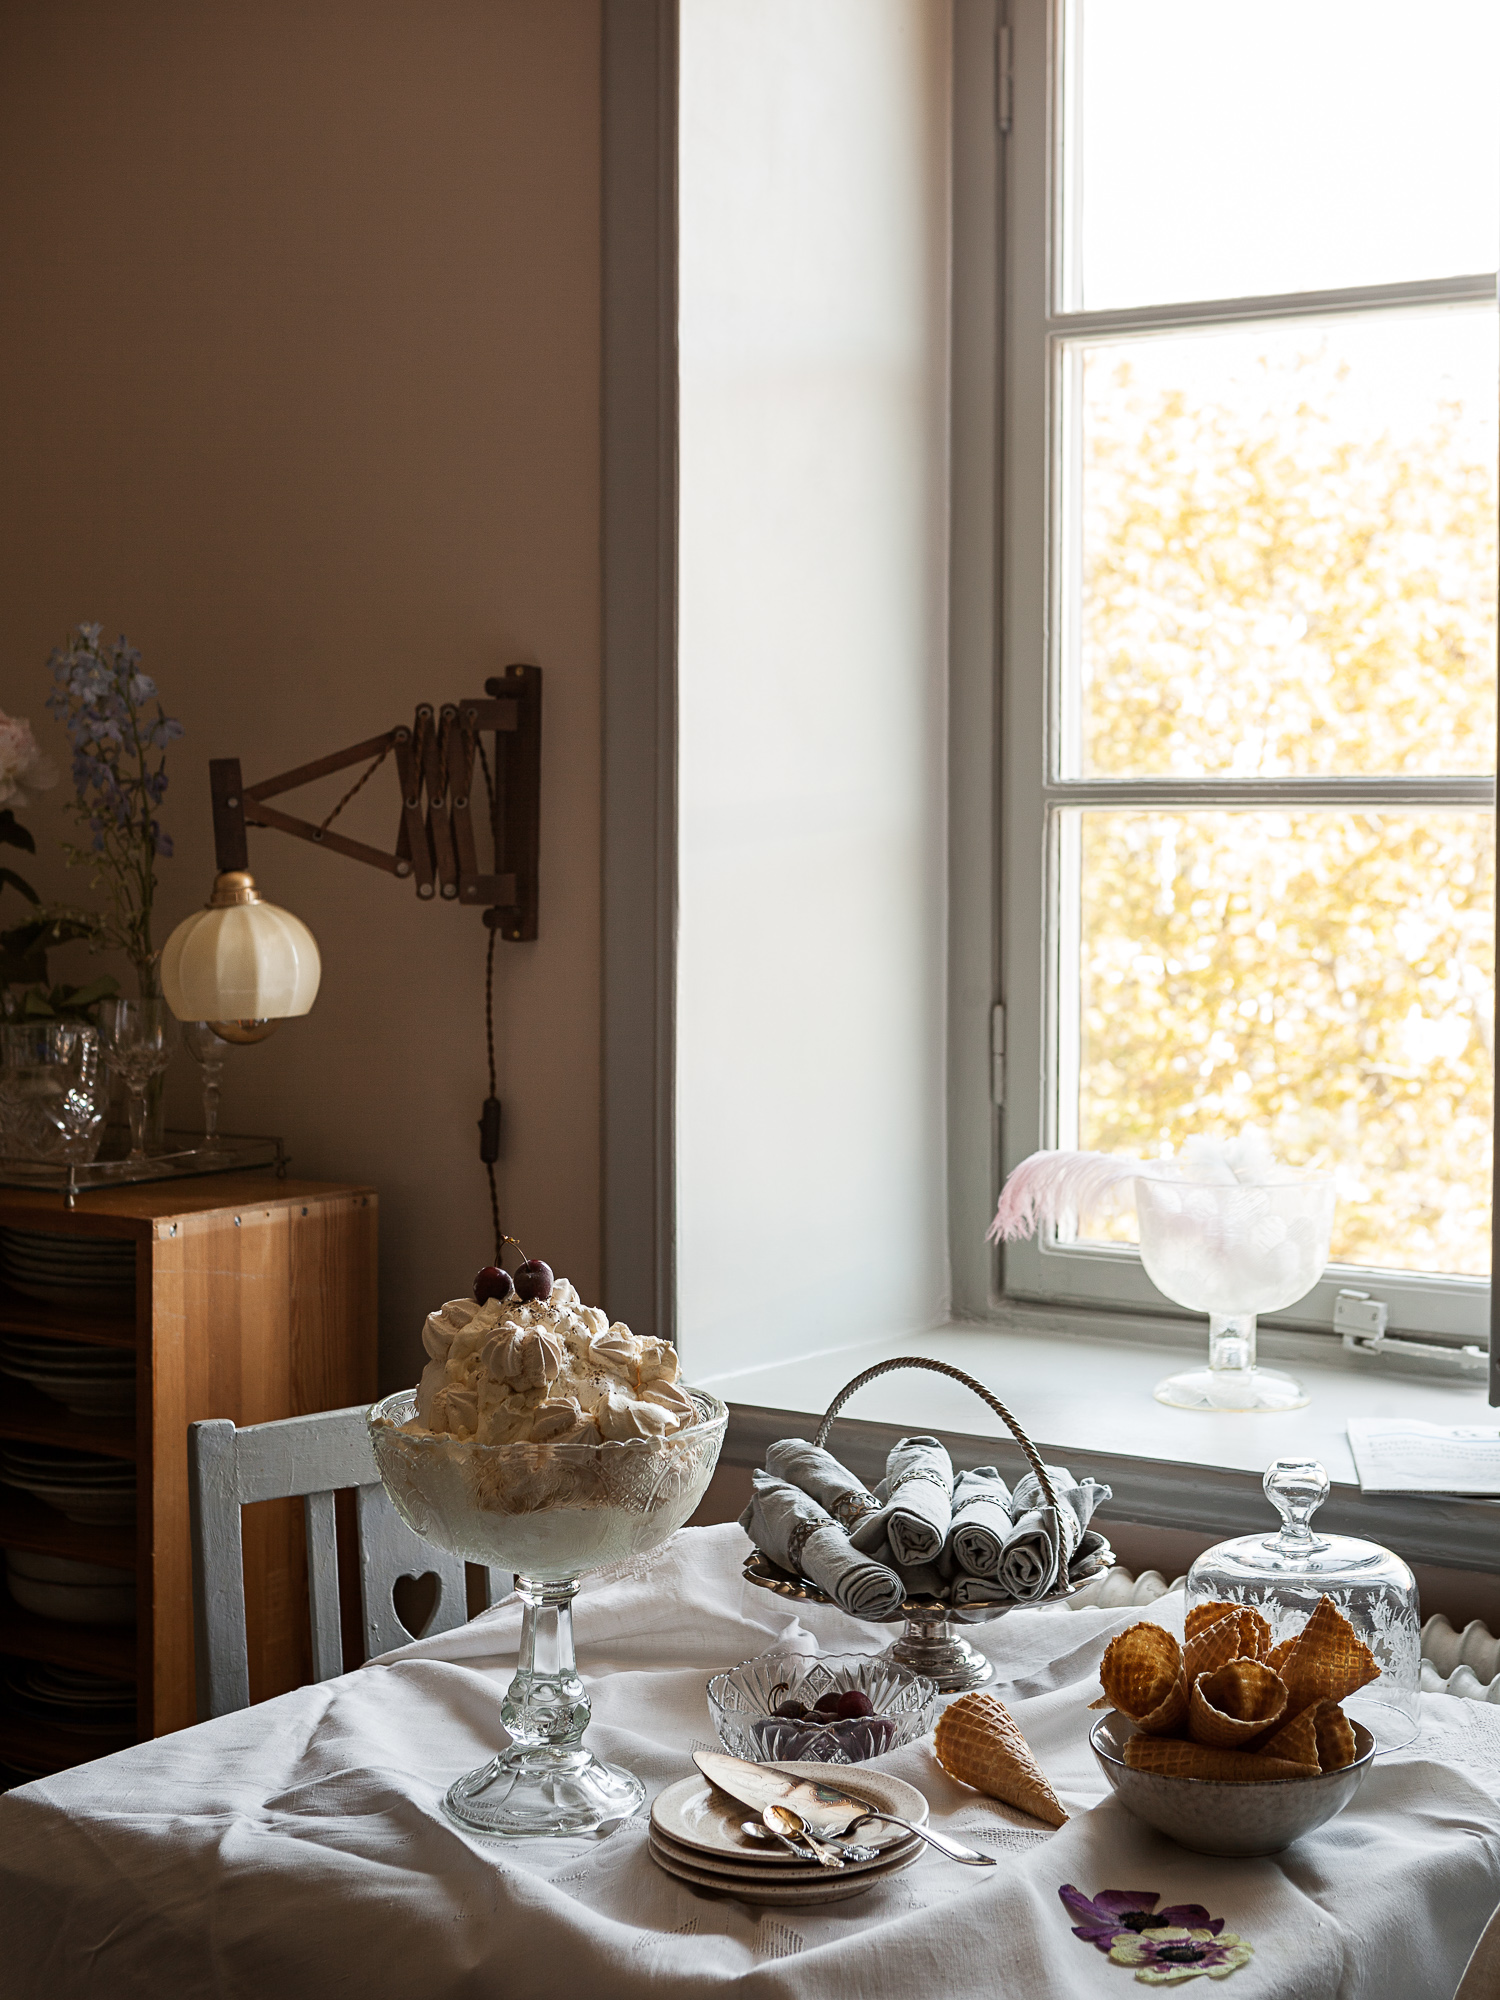 The Nordroom - A Romantic Vintage Apartment in Stockholm6.jpg